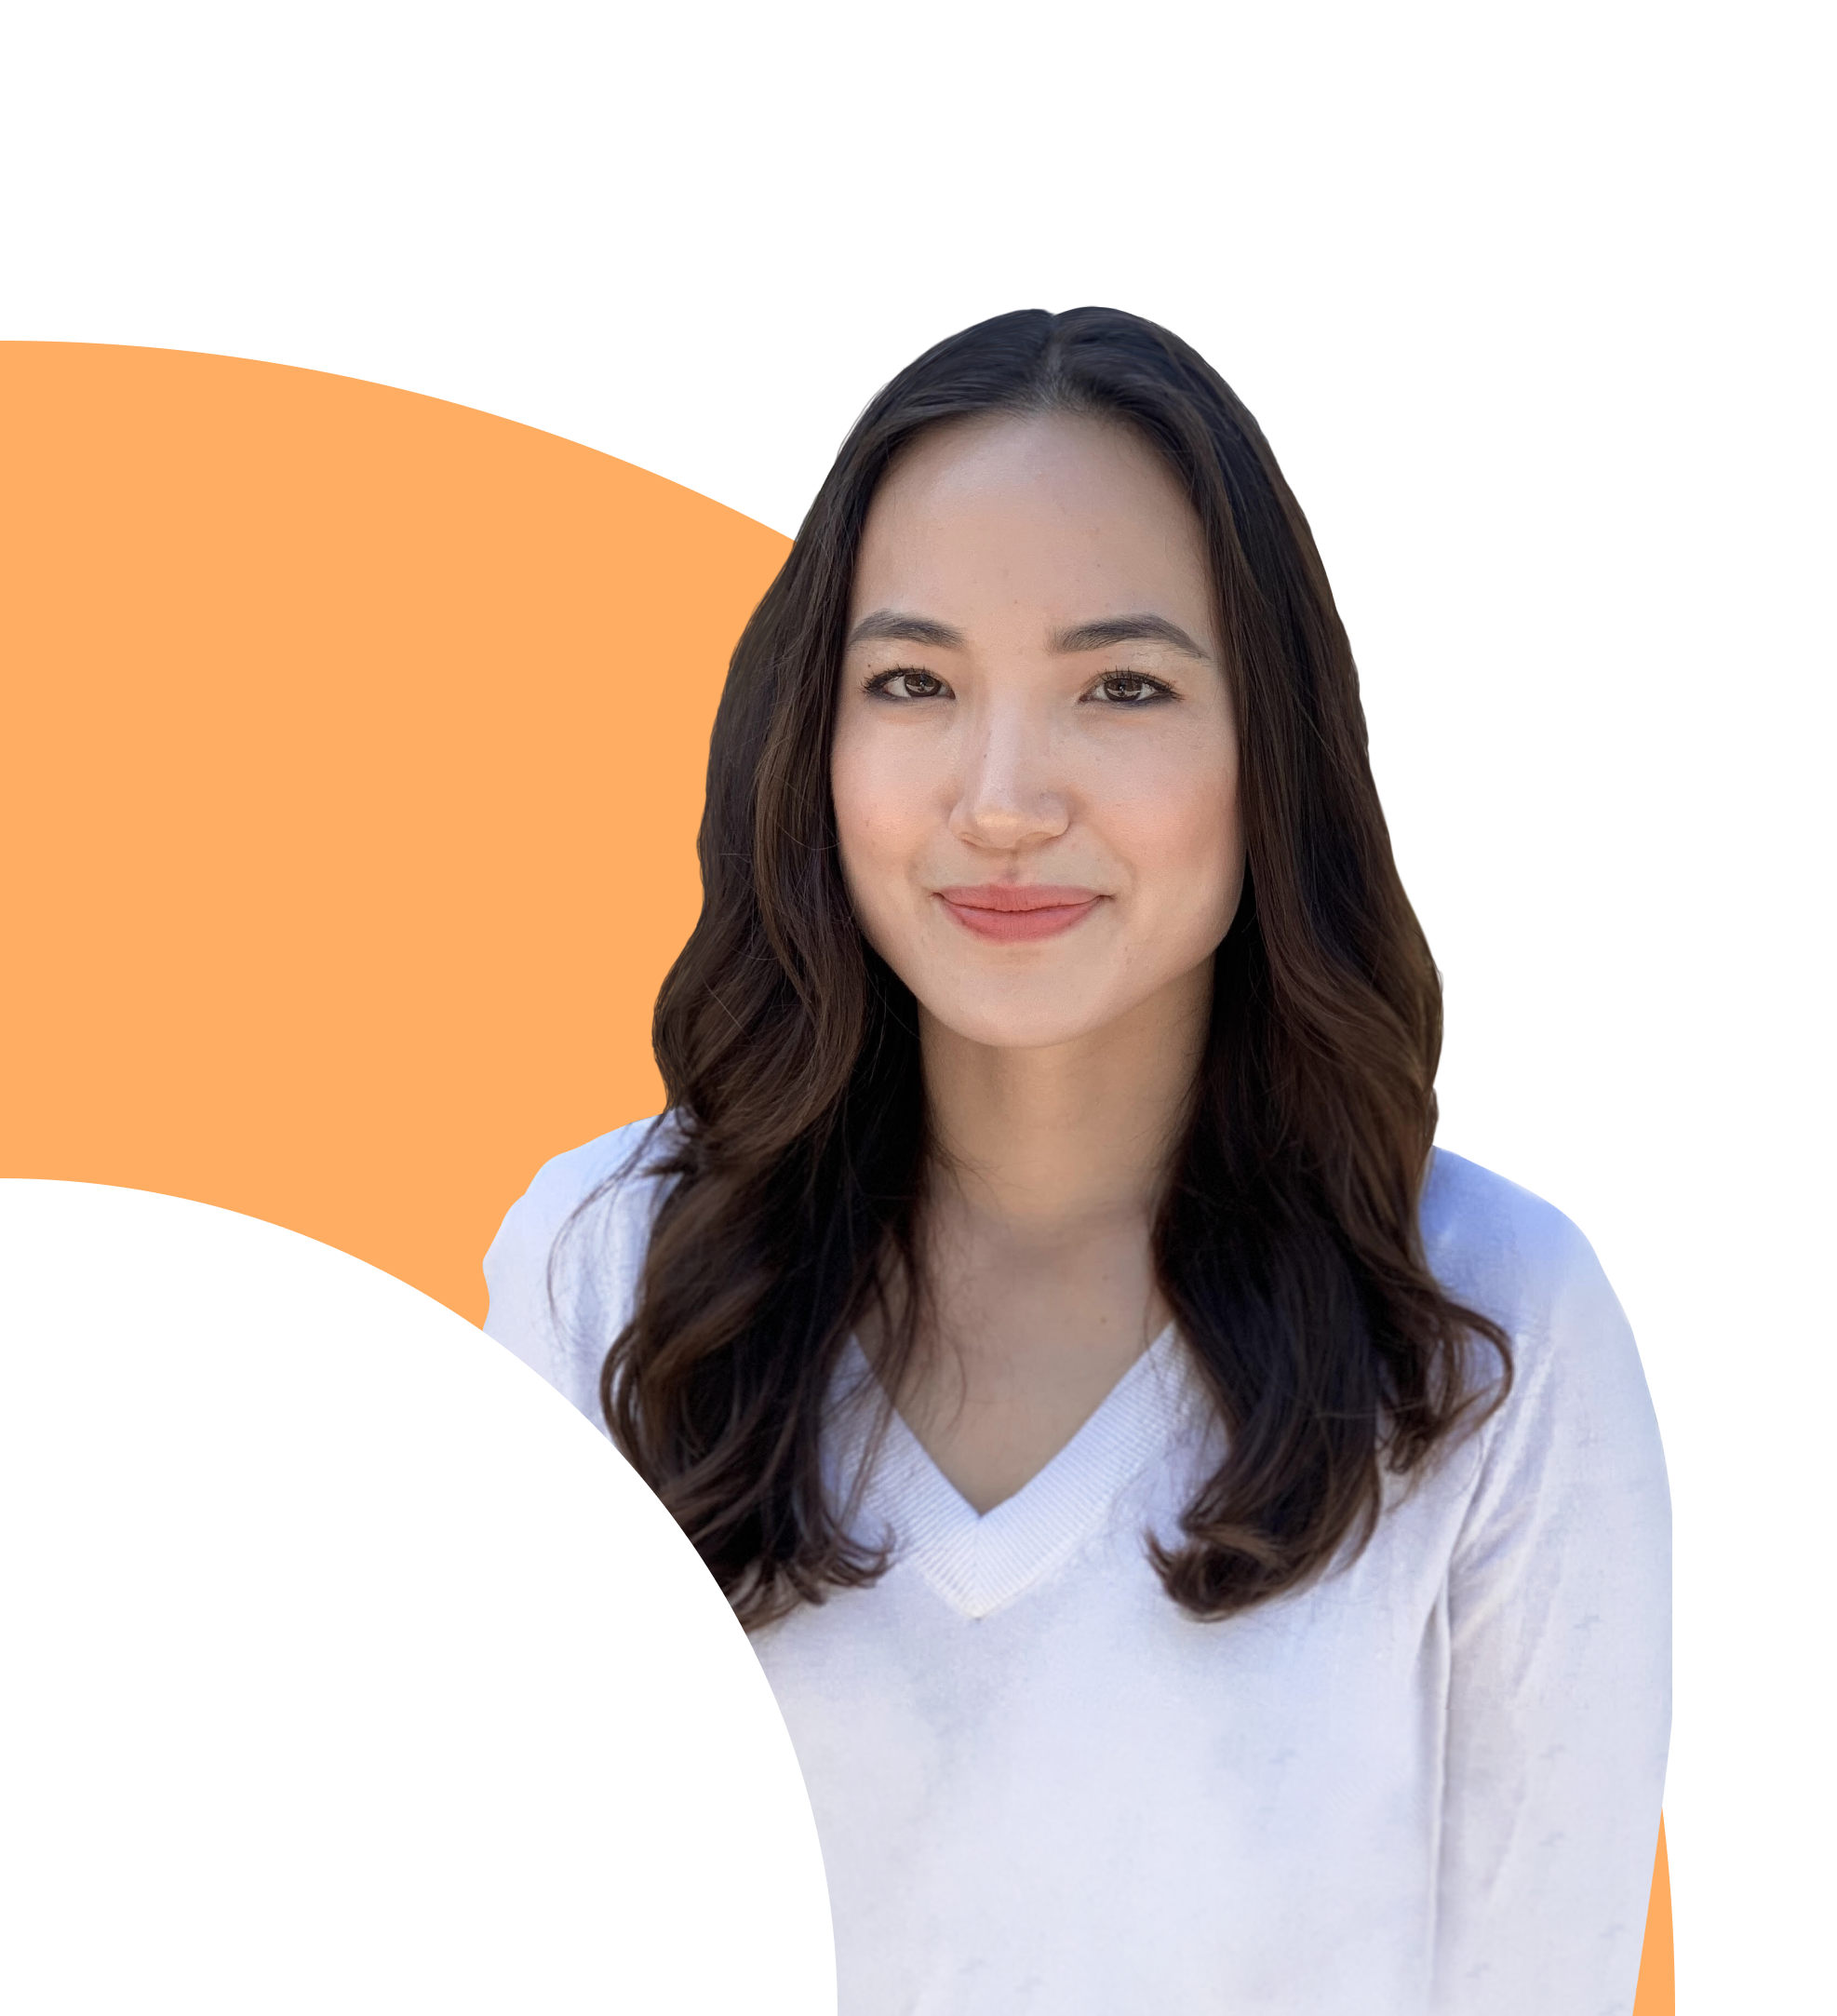 Yuna Akazawa, Product Designer at Braze